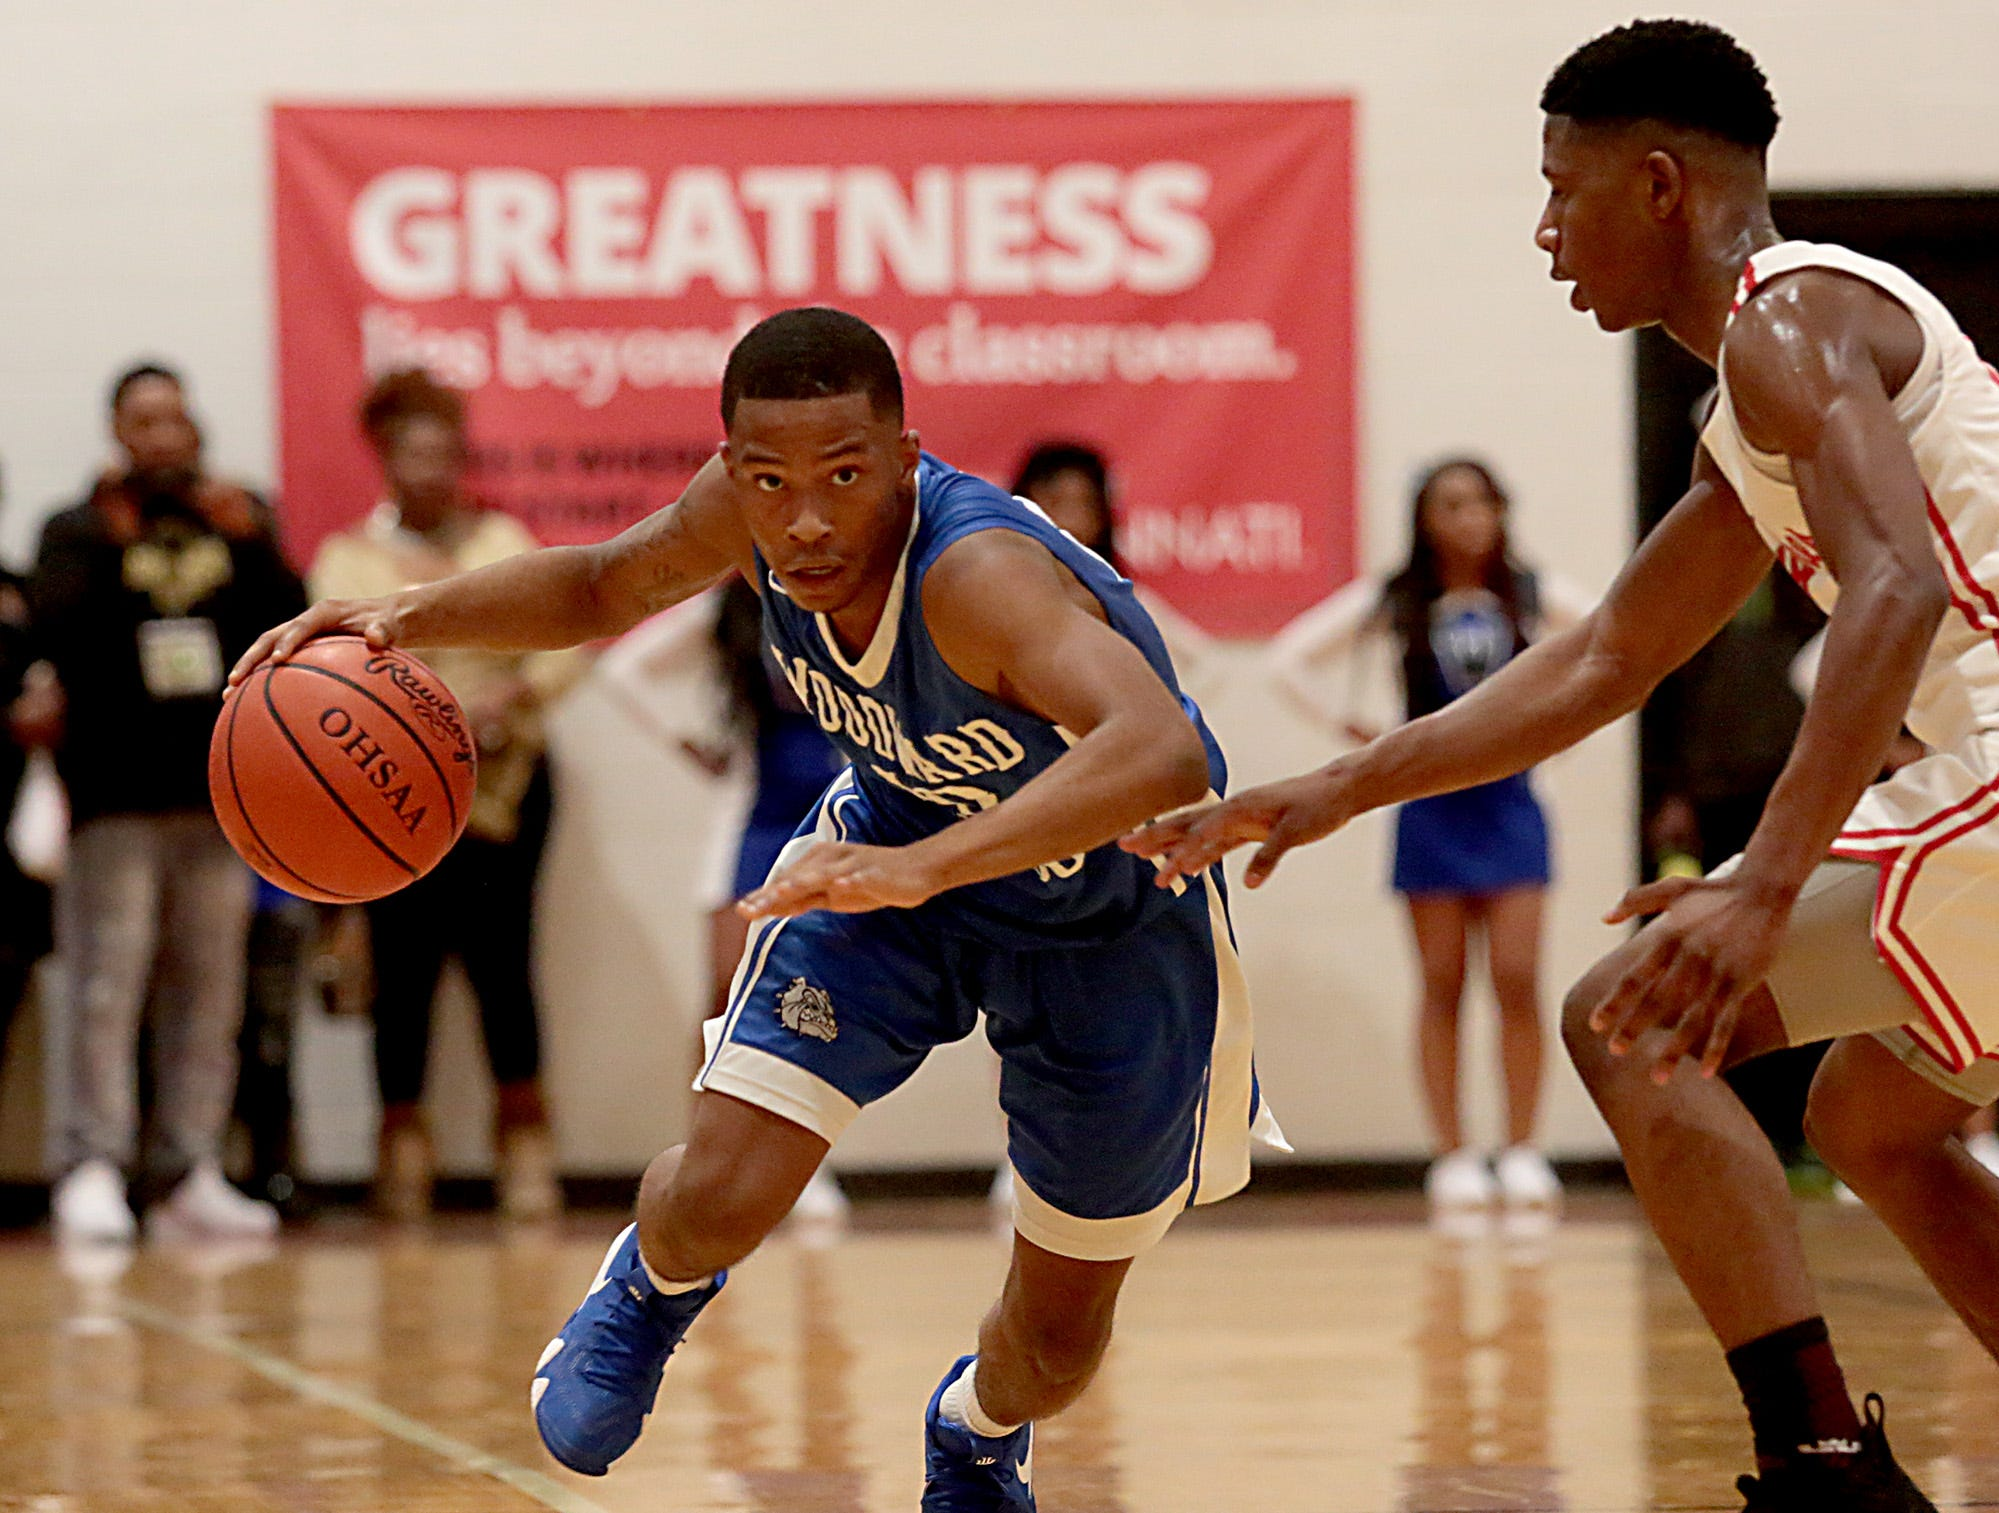 Woodward guard Dre Lewis brings the ball up court against Hughes during their game at Hughes in Clifton Friday, Nov. 30, 2018.